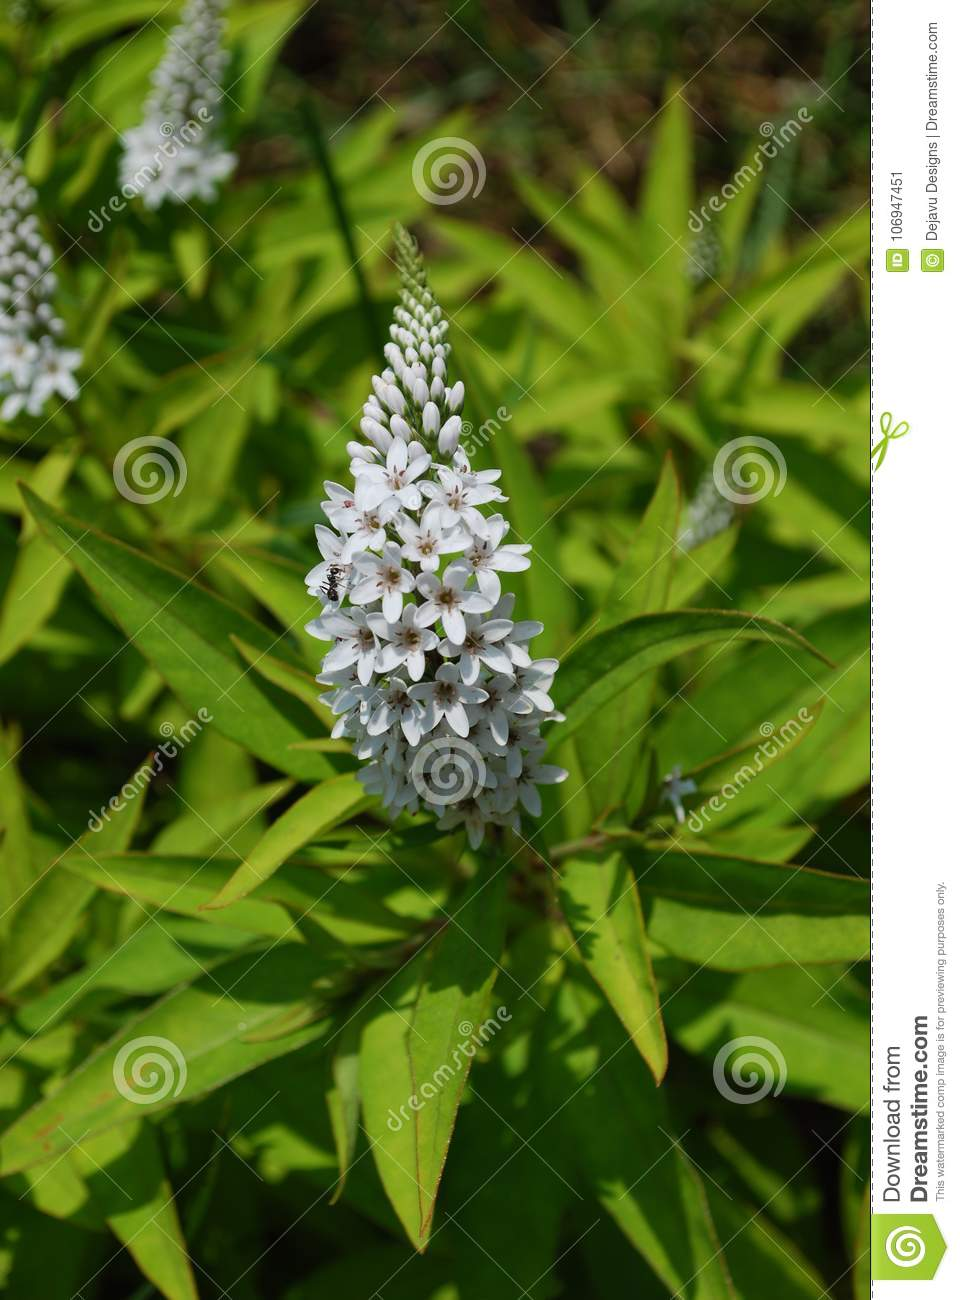 Flowering White Veronica Plant Stock Image Image Of Gypsyweed